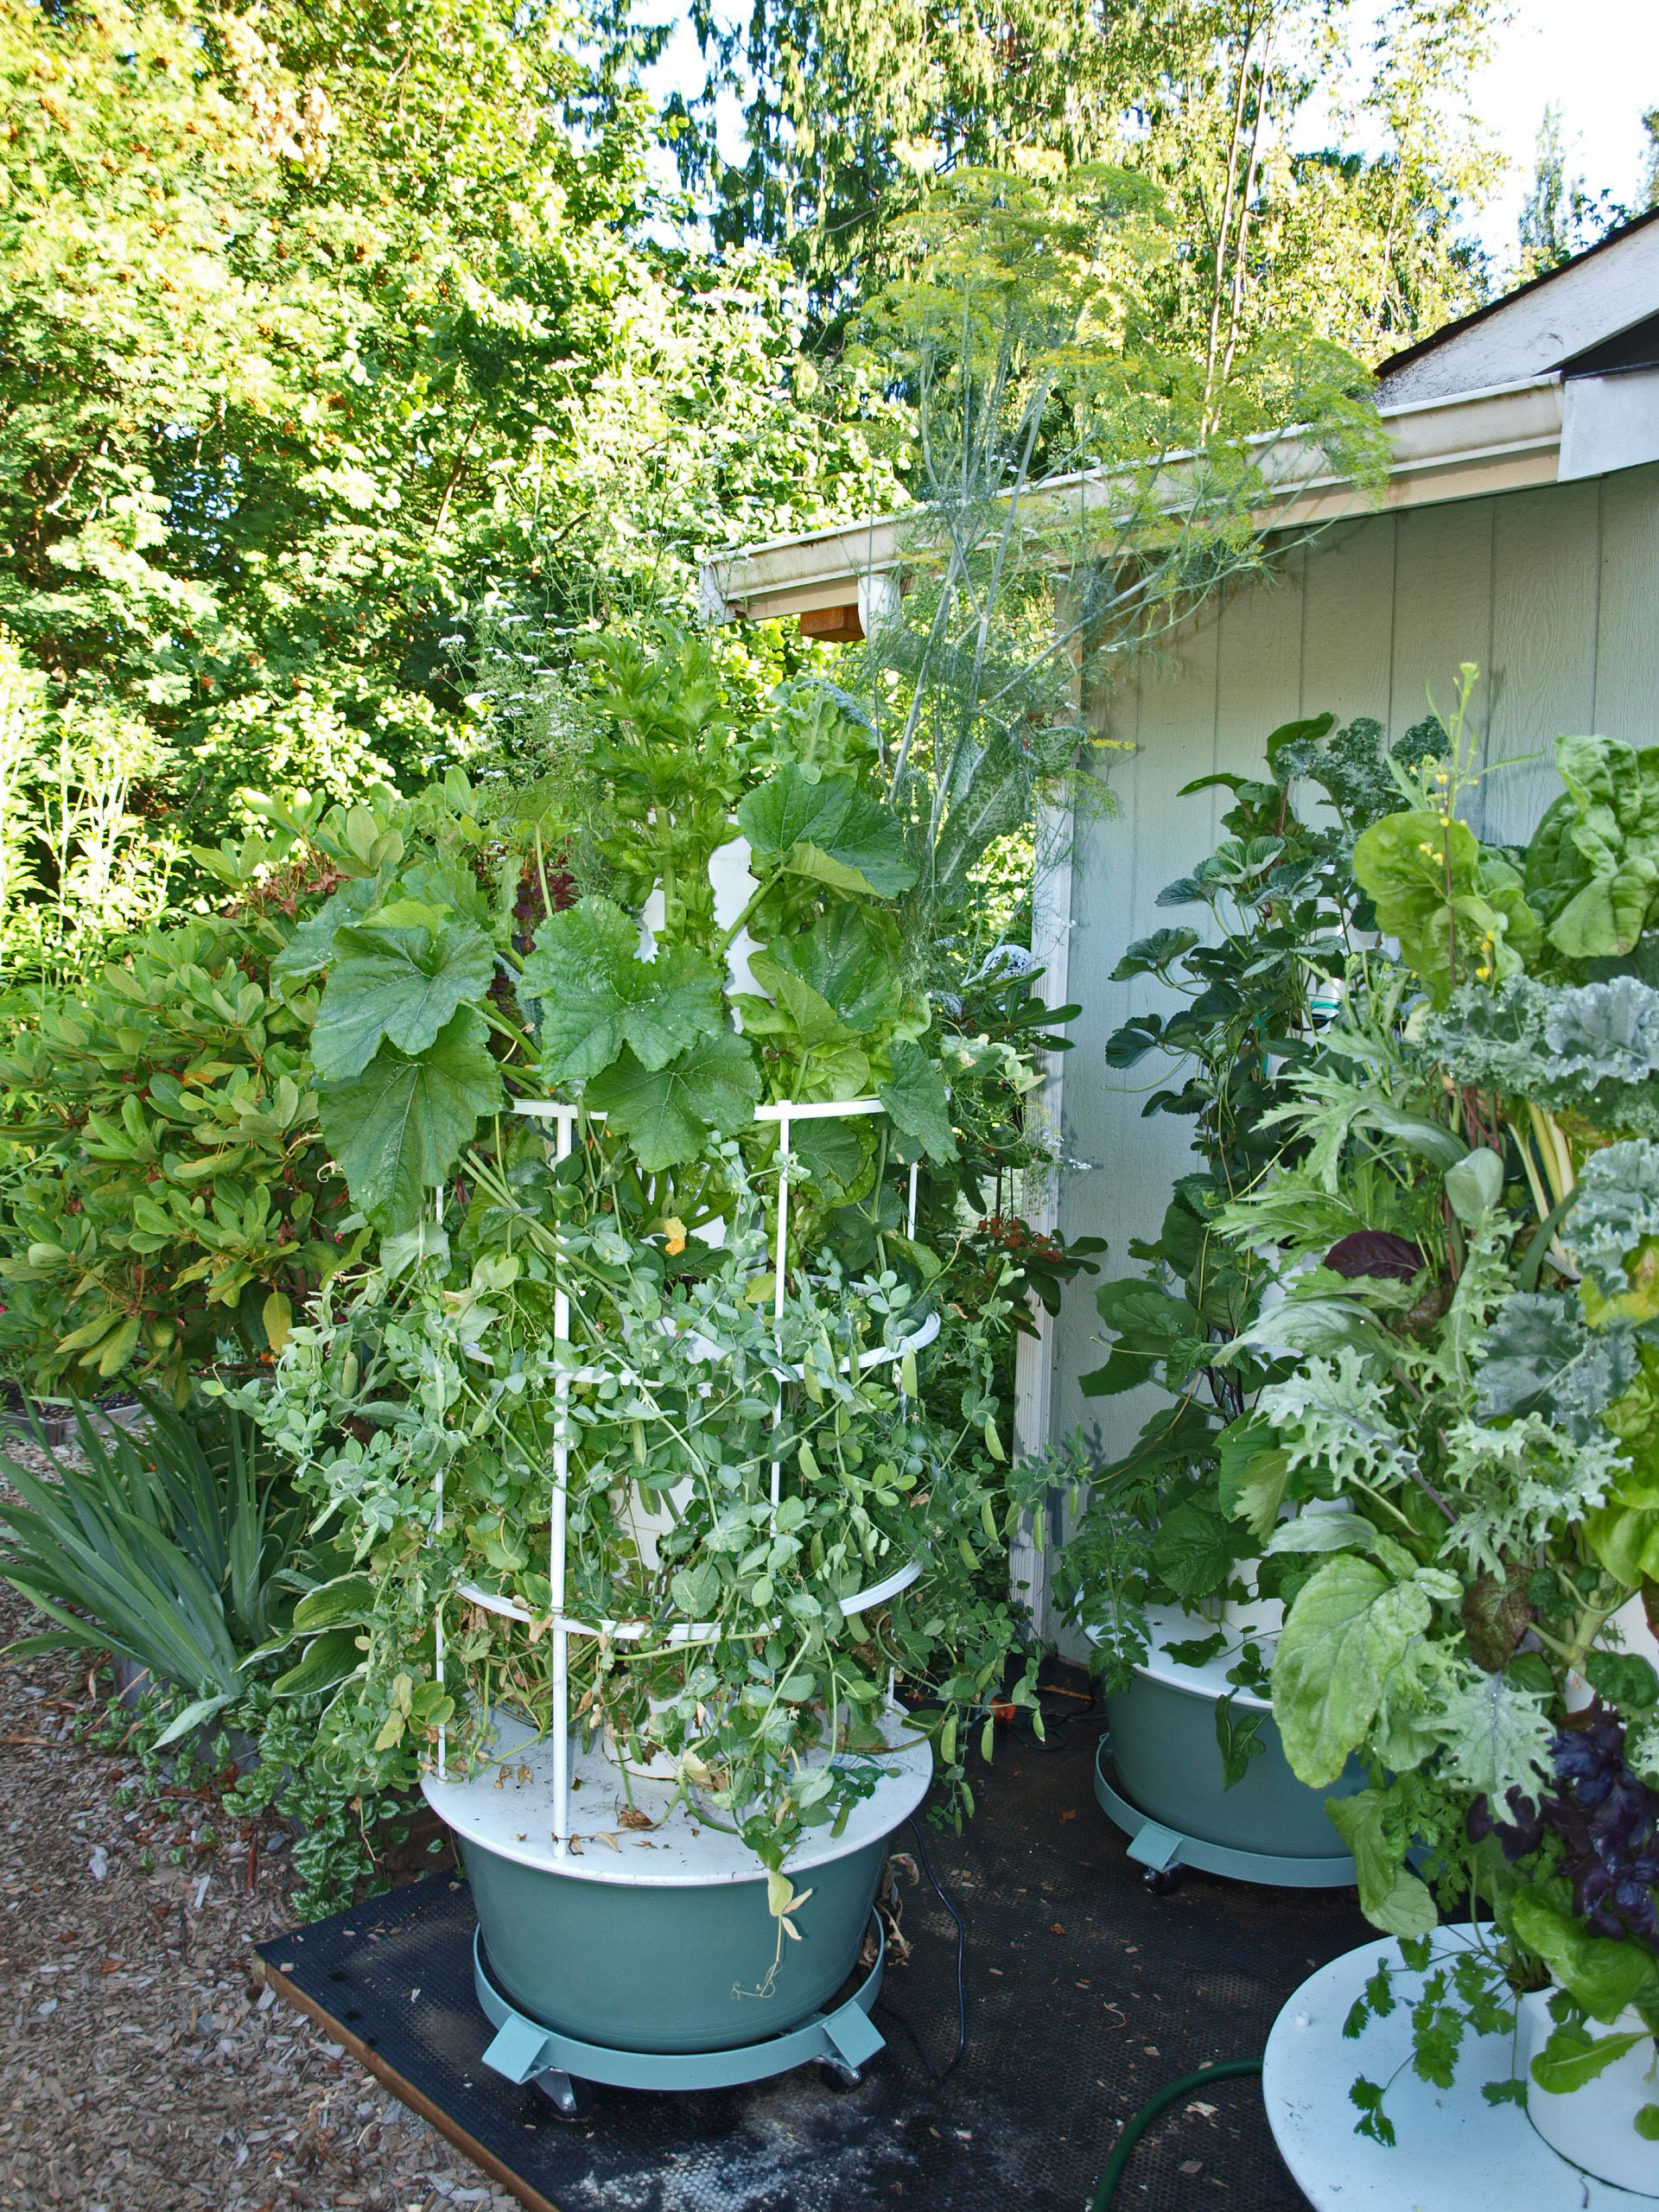 Amazing How Many Fruits and Vegetables Can Grow In A Small Space